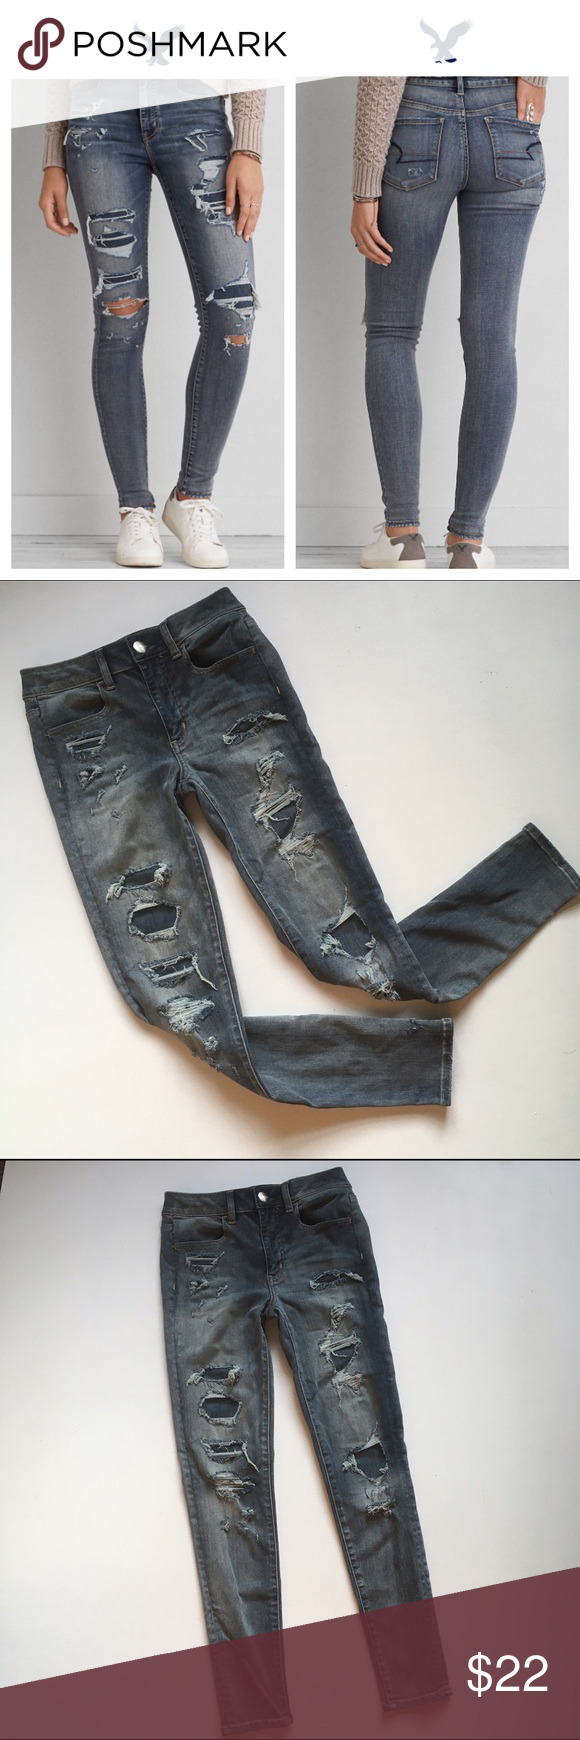 AEO DENIM X CAFE HI-RISE JEGGING AEO DENIM X CAFE HI-RISE DESTROYED JEGGING super-super stretch. Size 4 American Eagle Outfitters Jeans Skinny